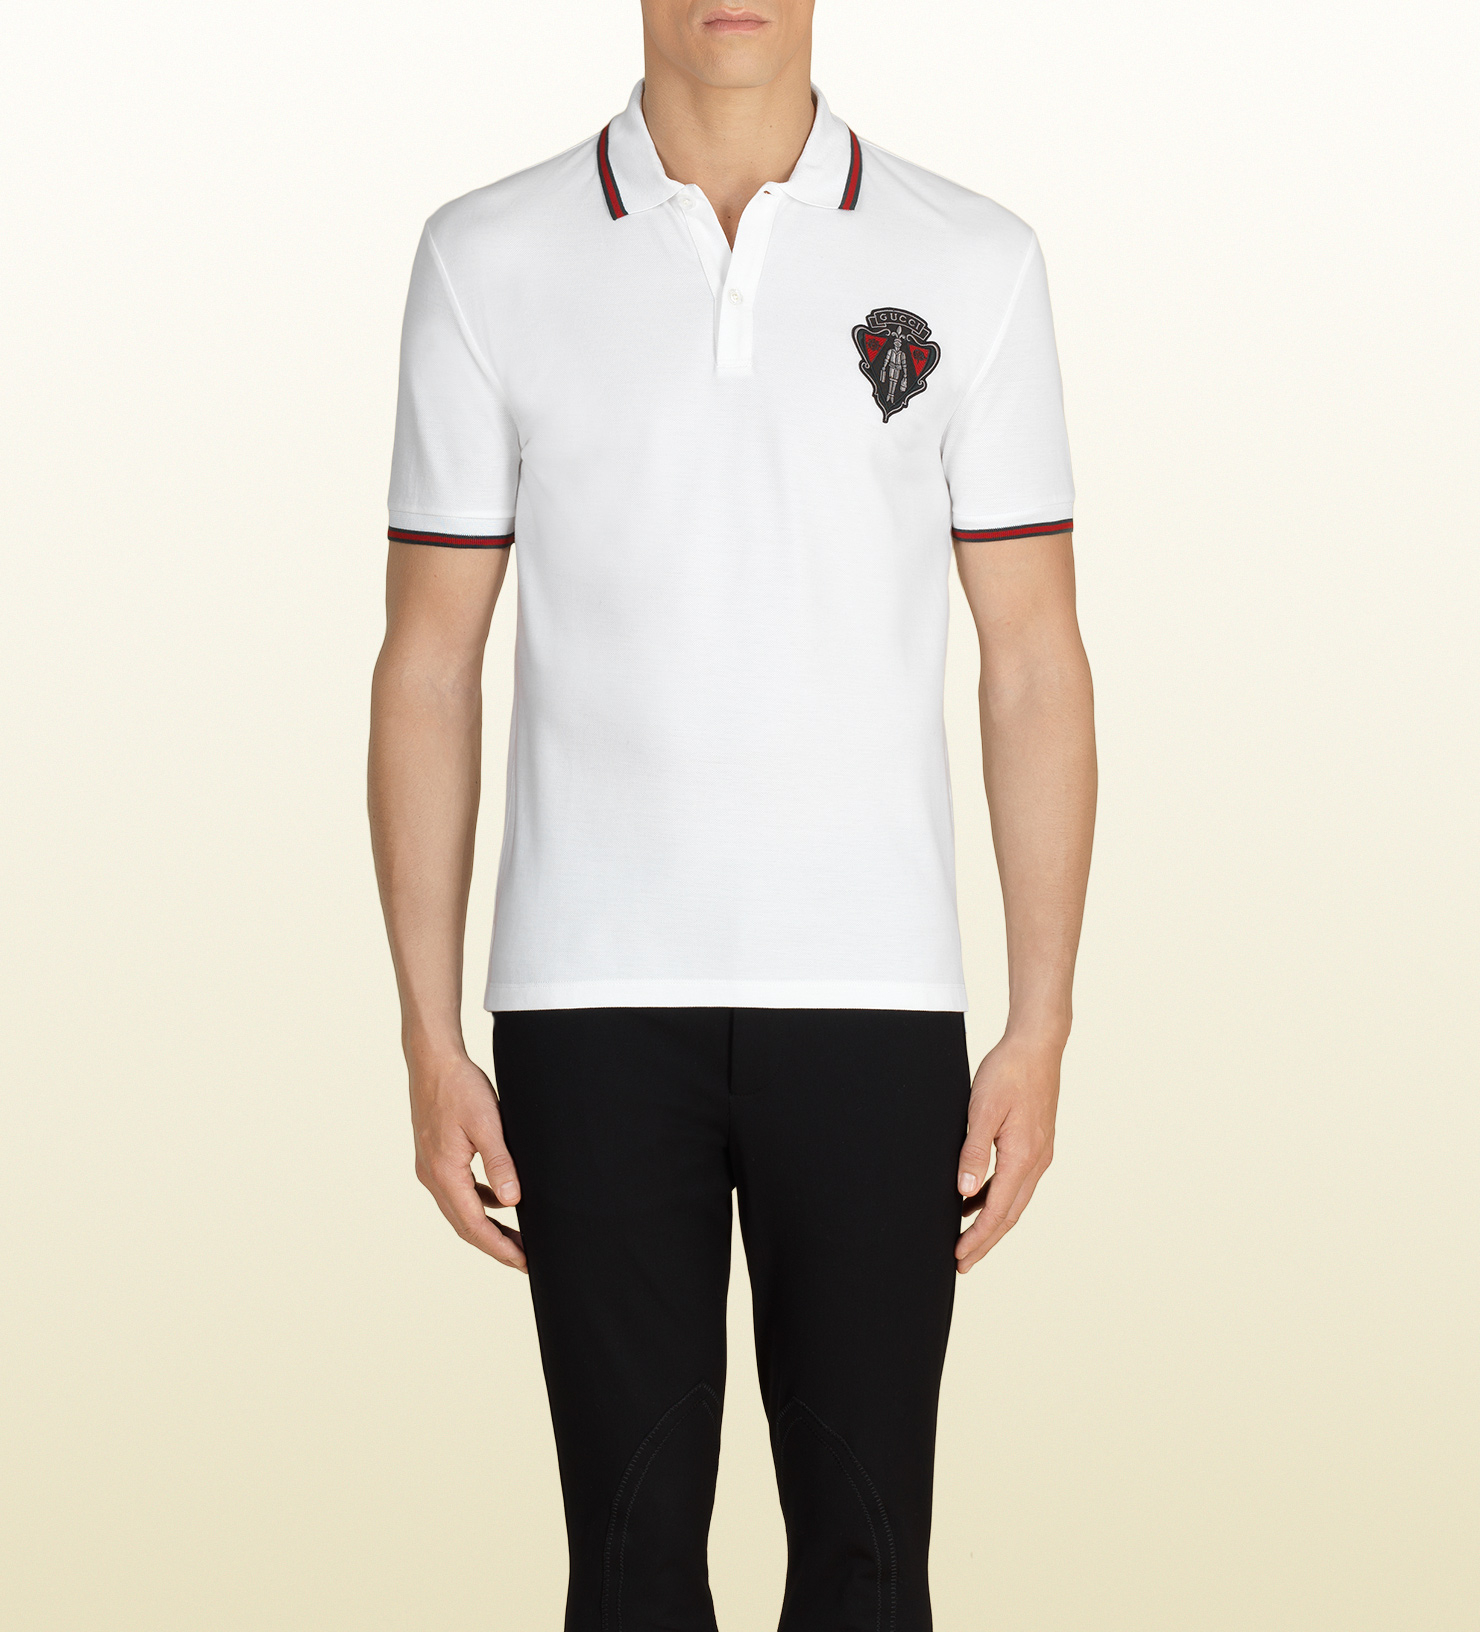 Lyst Gucci White Polo Shirt In White For Men